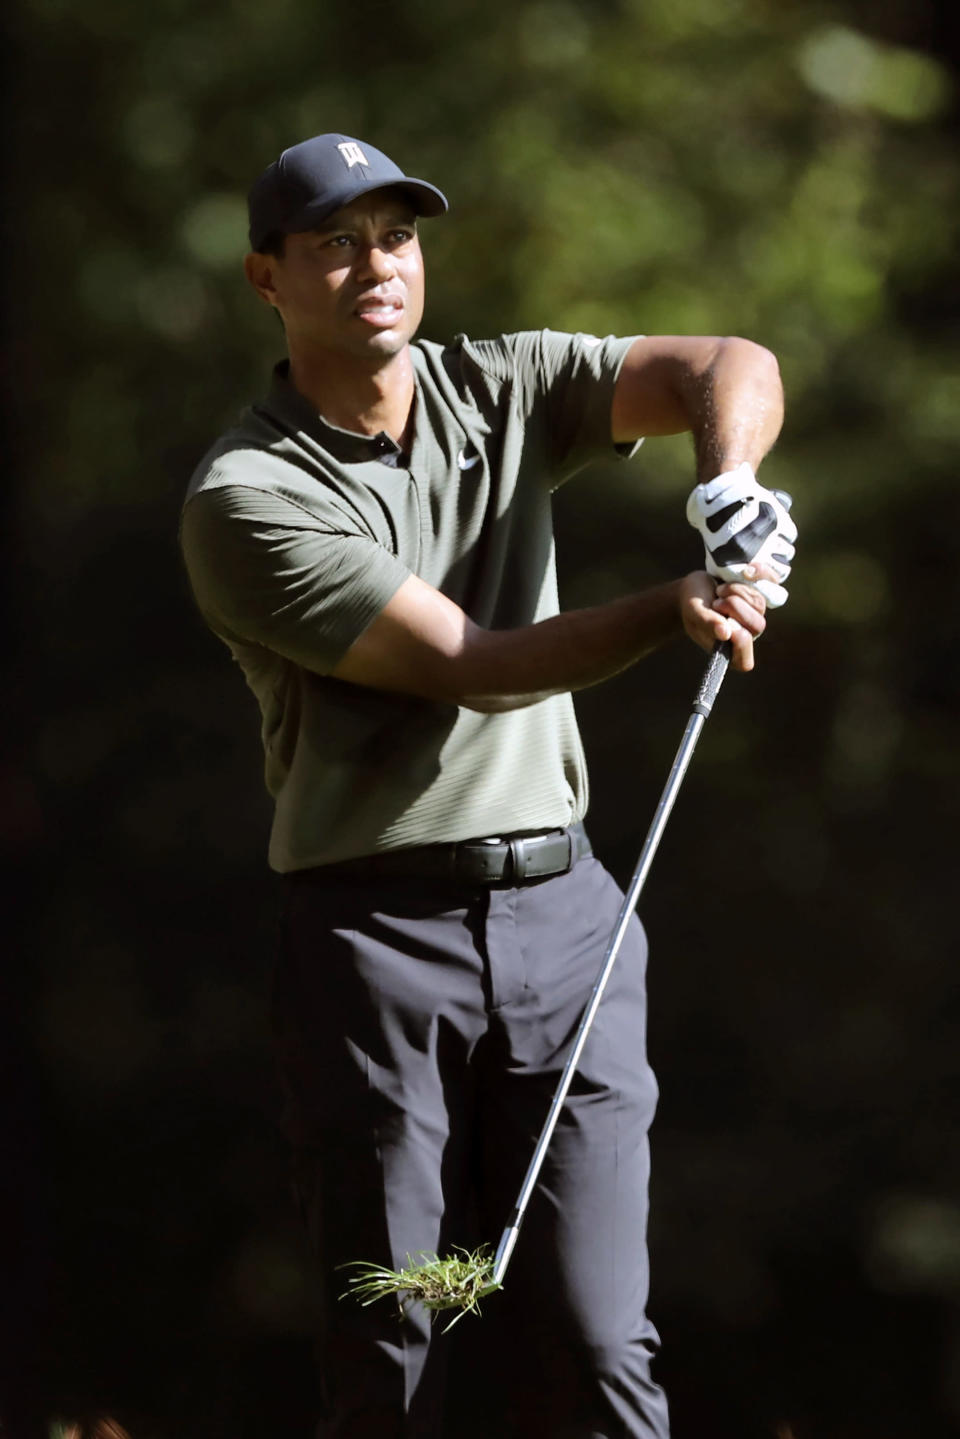 Tiger Woods reacts after teeing off on the 11th hole during the first round of the Masters golf tournament Thursday, Nov. 12, 2020, in Augusta, Ga. (Curtis Compton/Atlanta Journal-Constitution via AP)